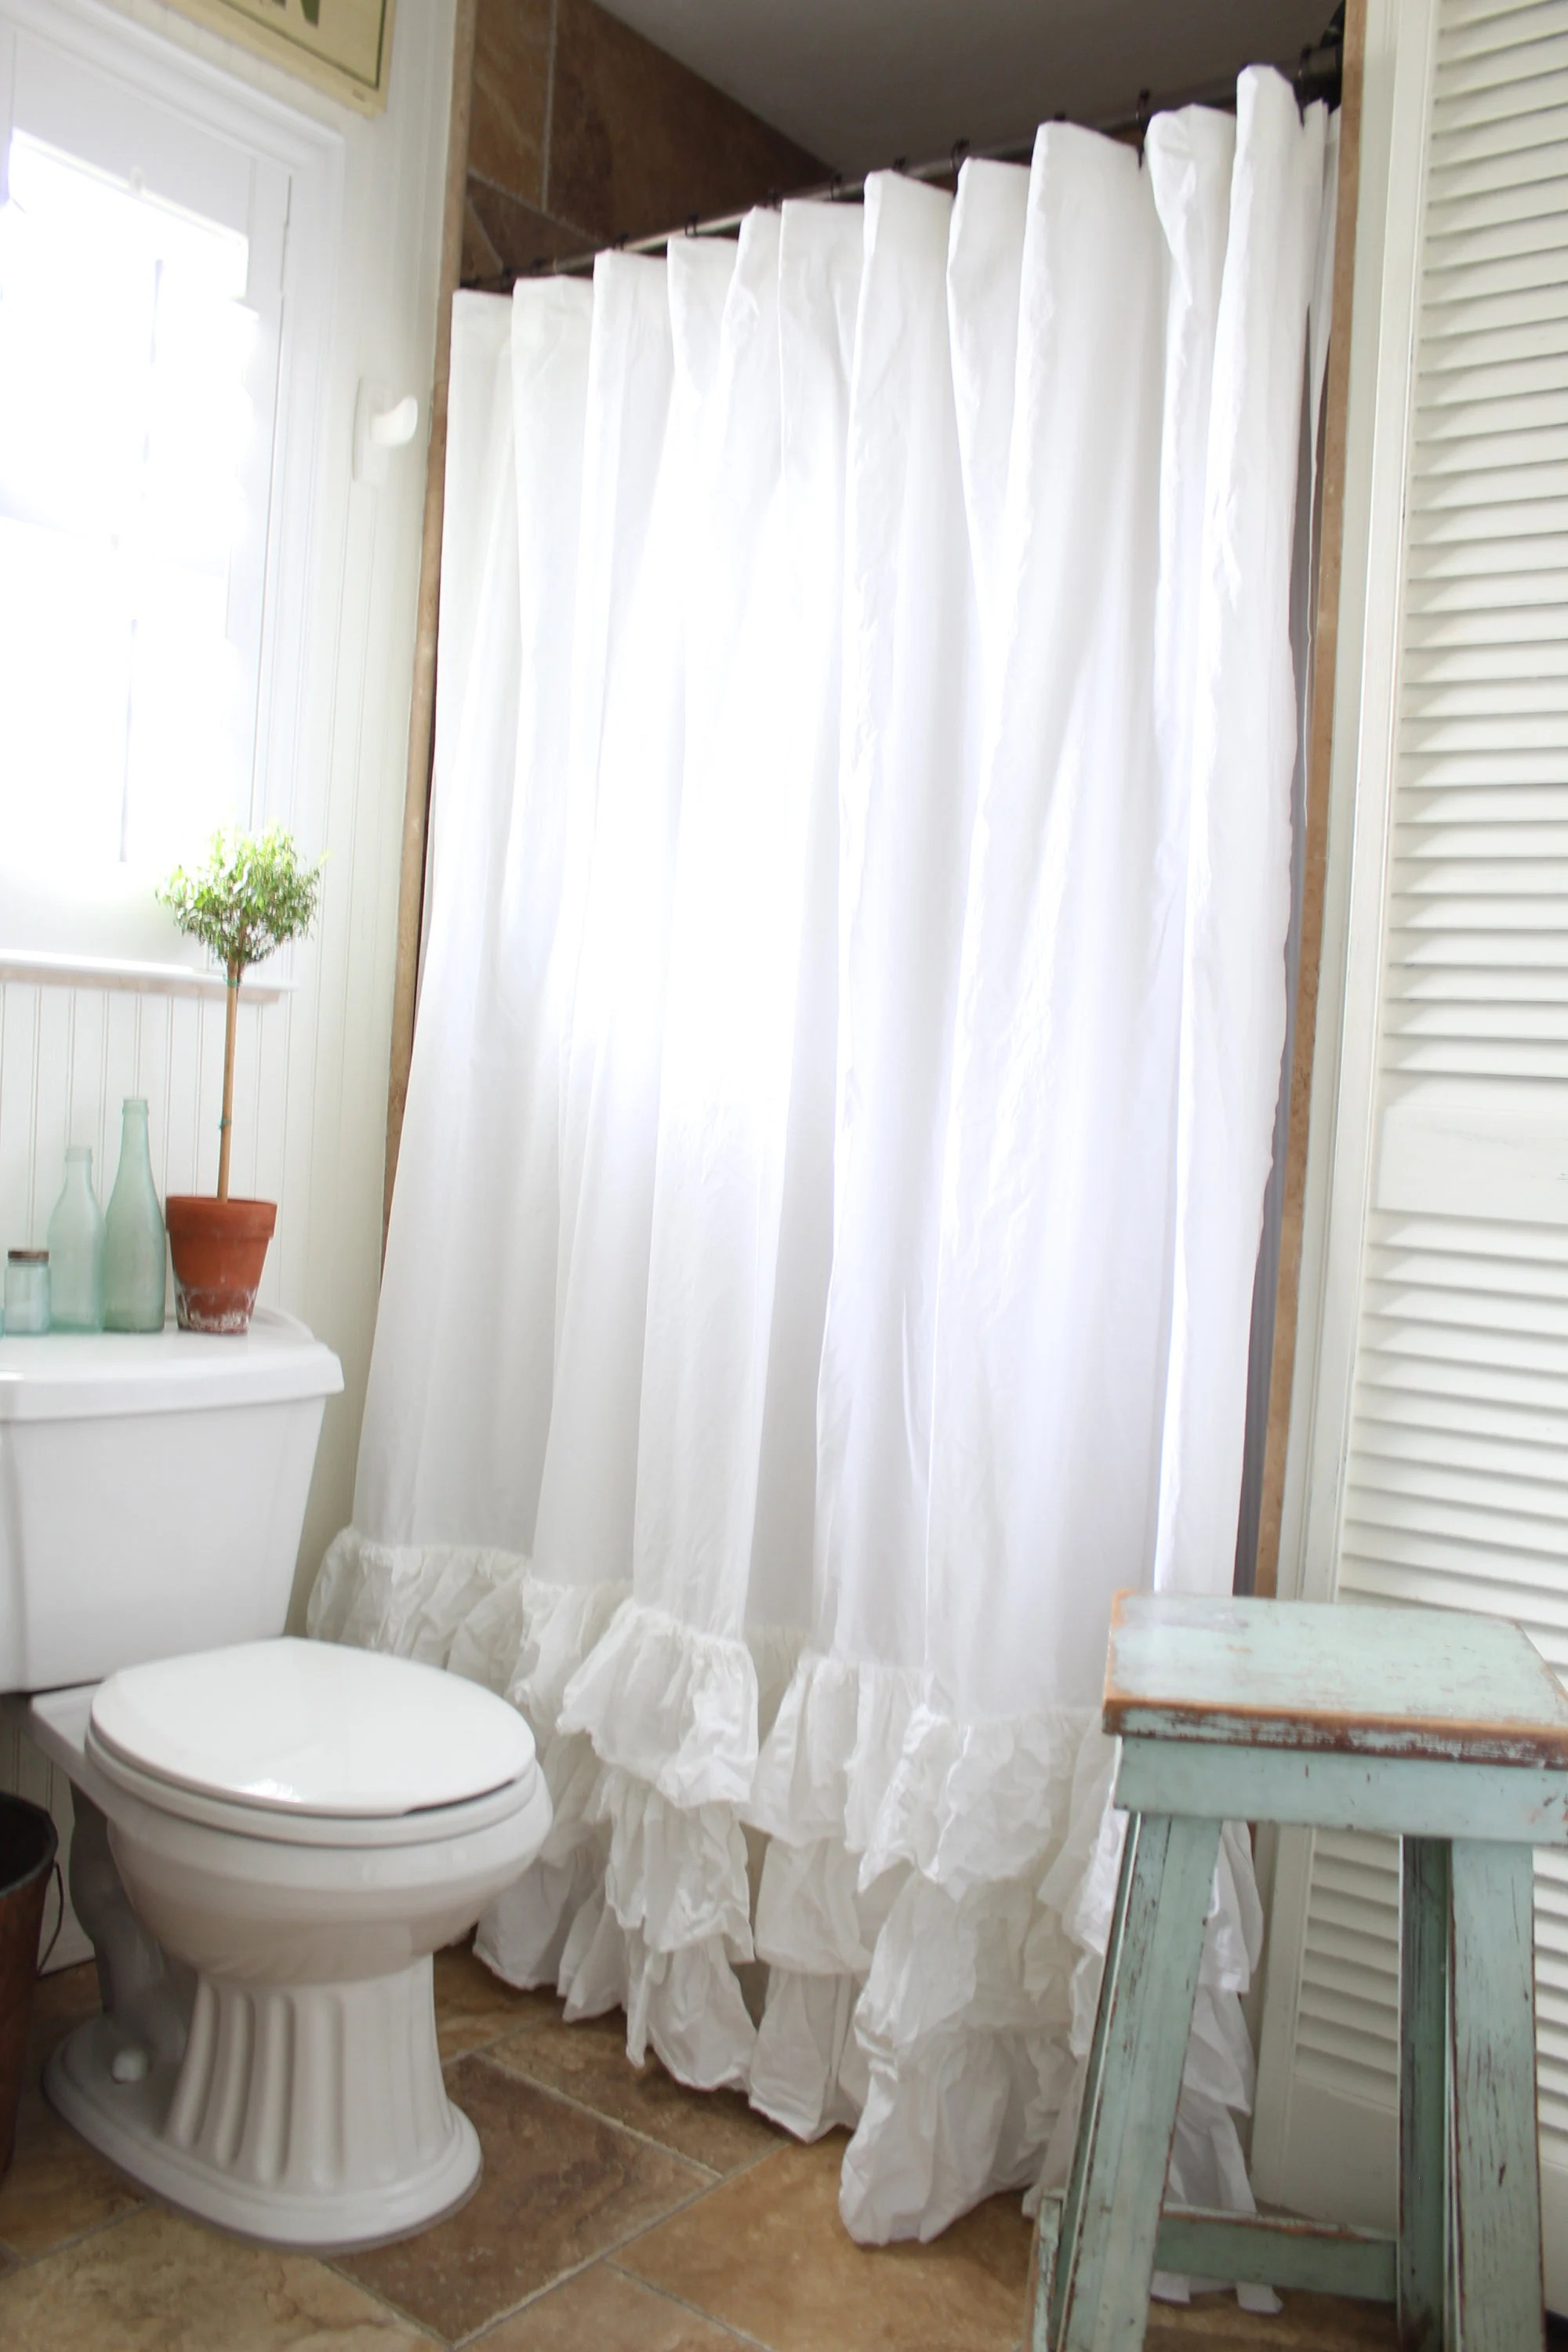 Cottage Shower Curtain White Ruffled Shower Curtain With Rows Of Tattered Ruffles Shower Curtains Farmhouse Decor Farmhouse Cottage Decor